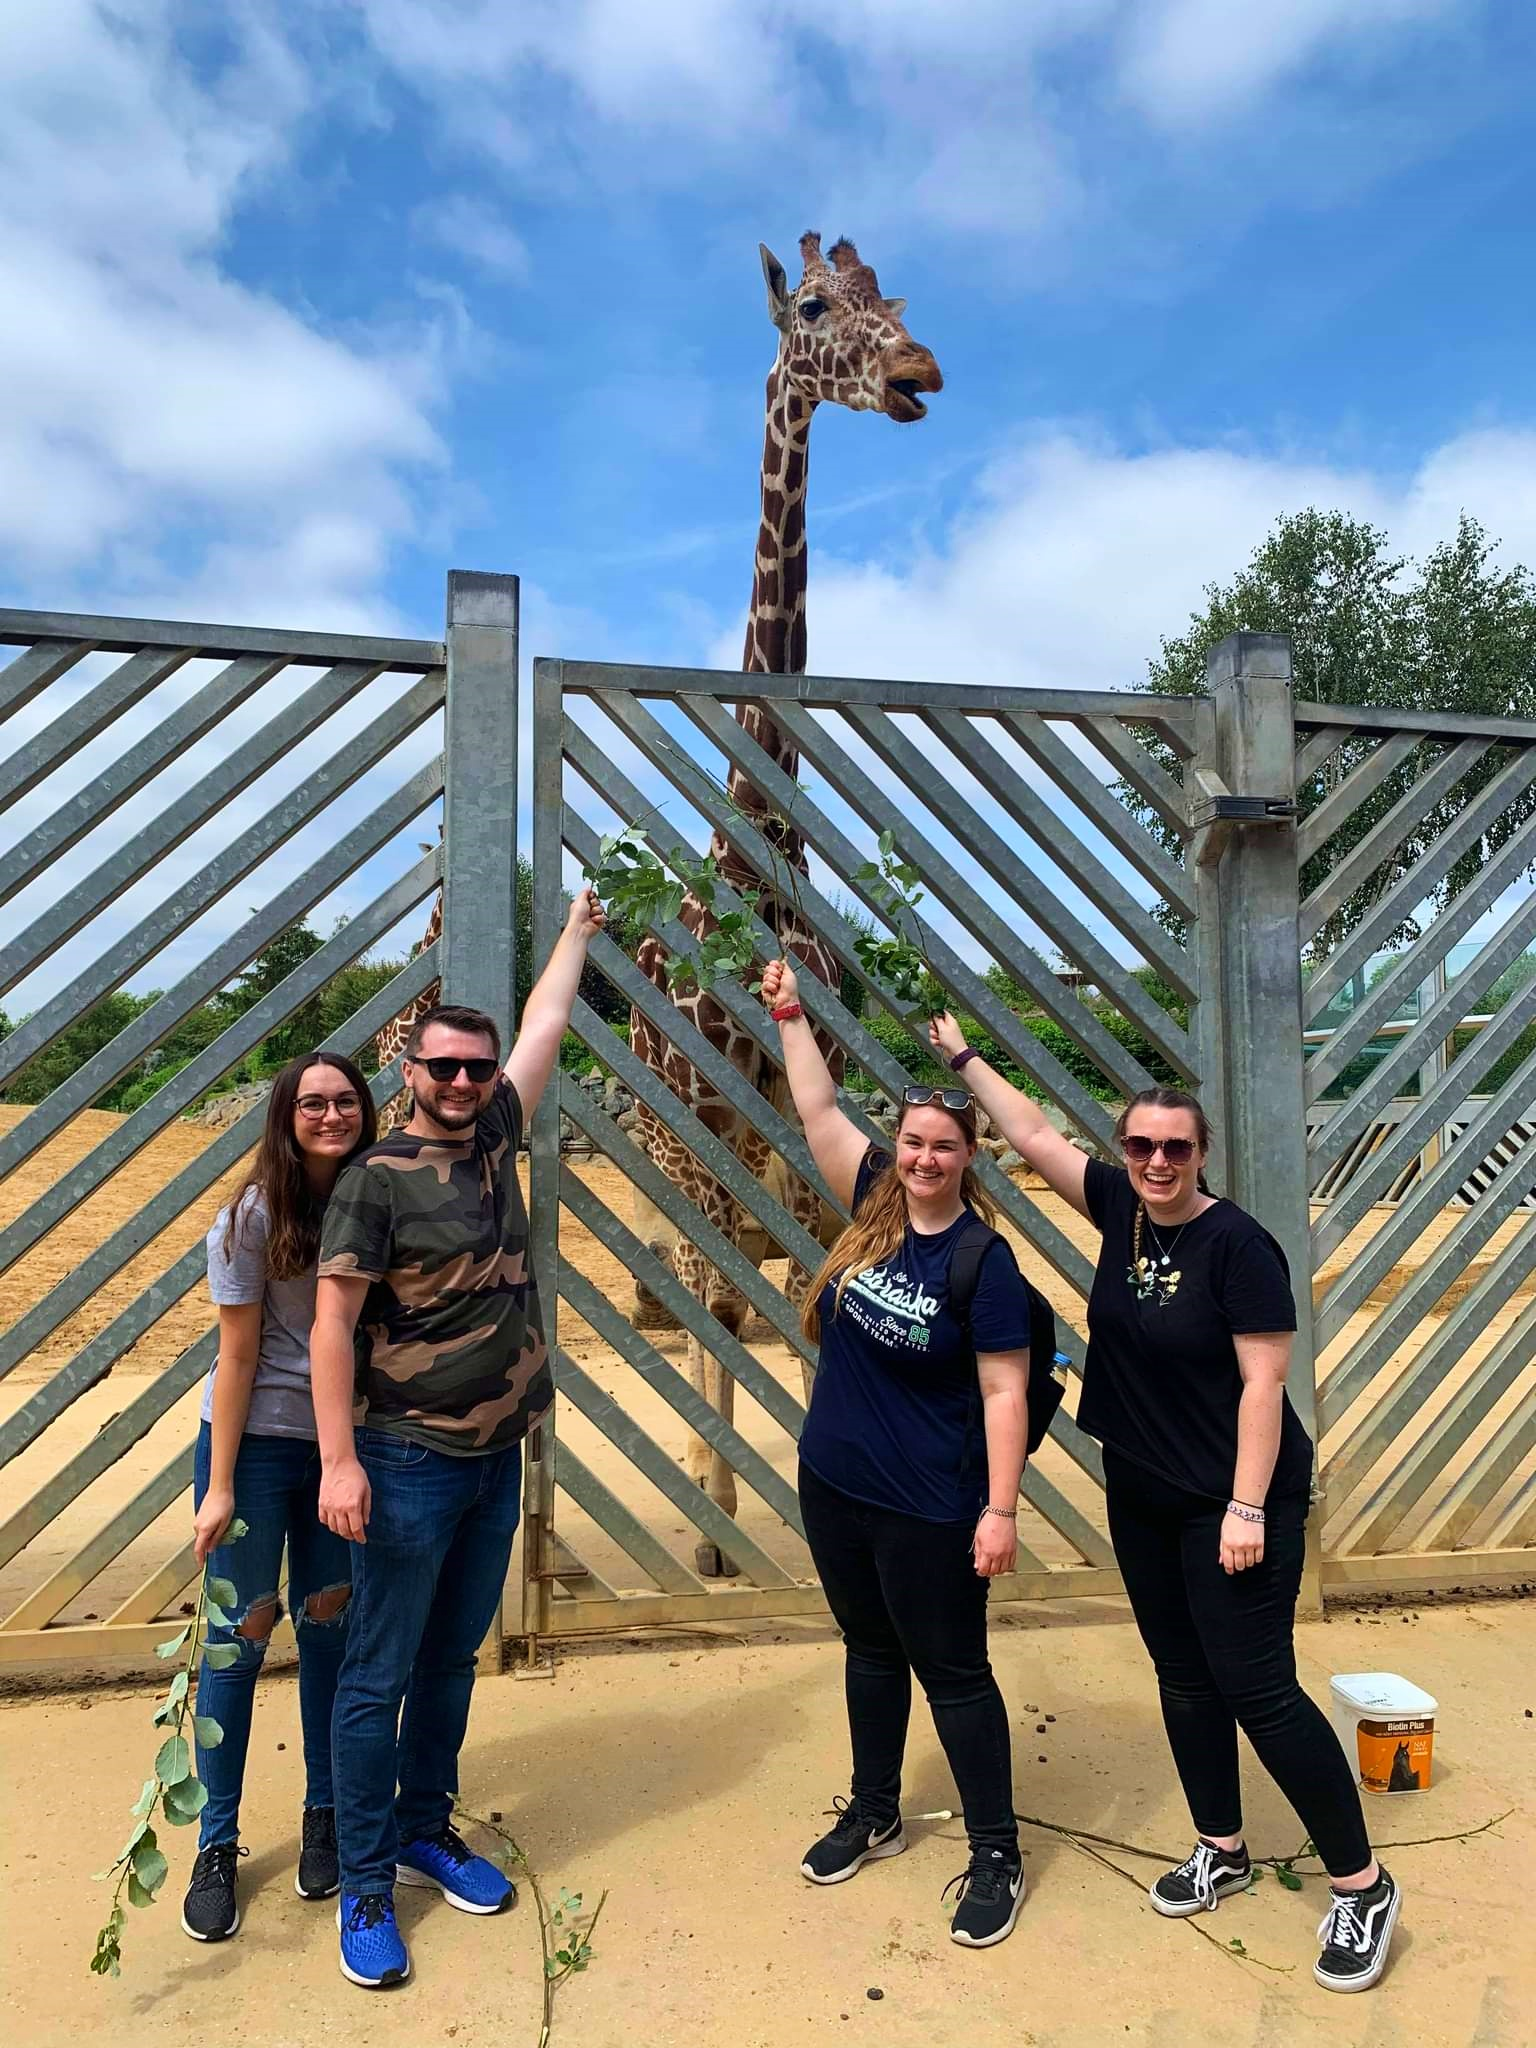 Colchester four people feeding the giraffes onZoo extra-ordinary experience day.